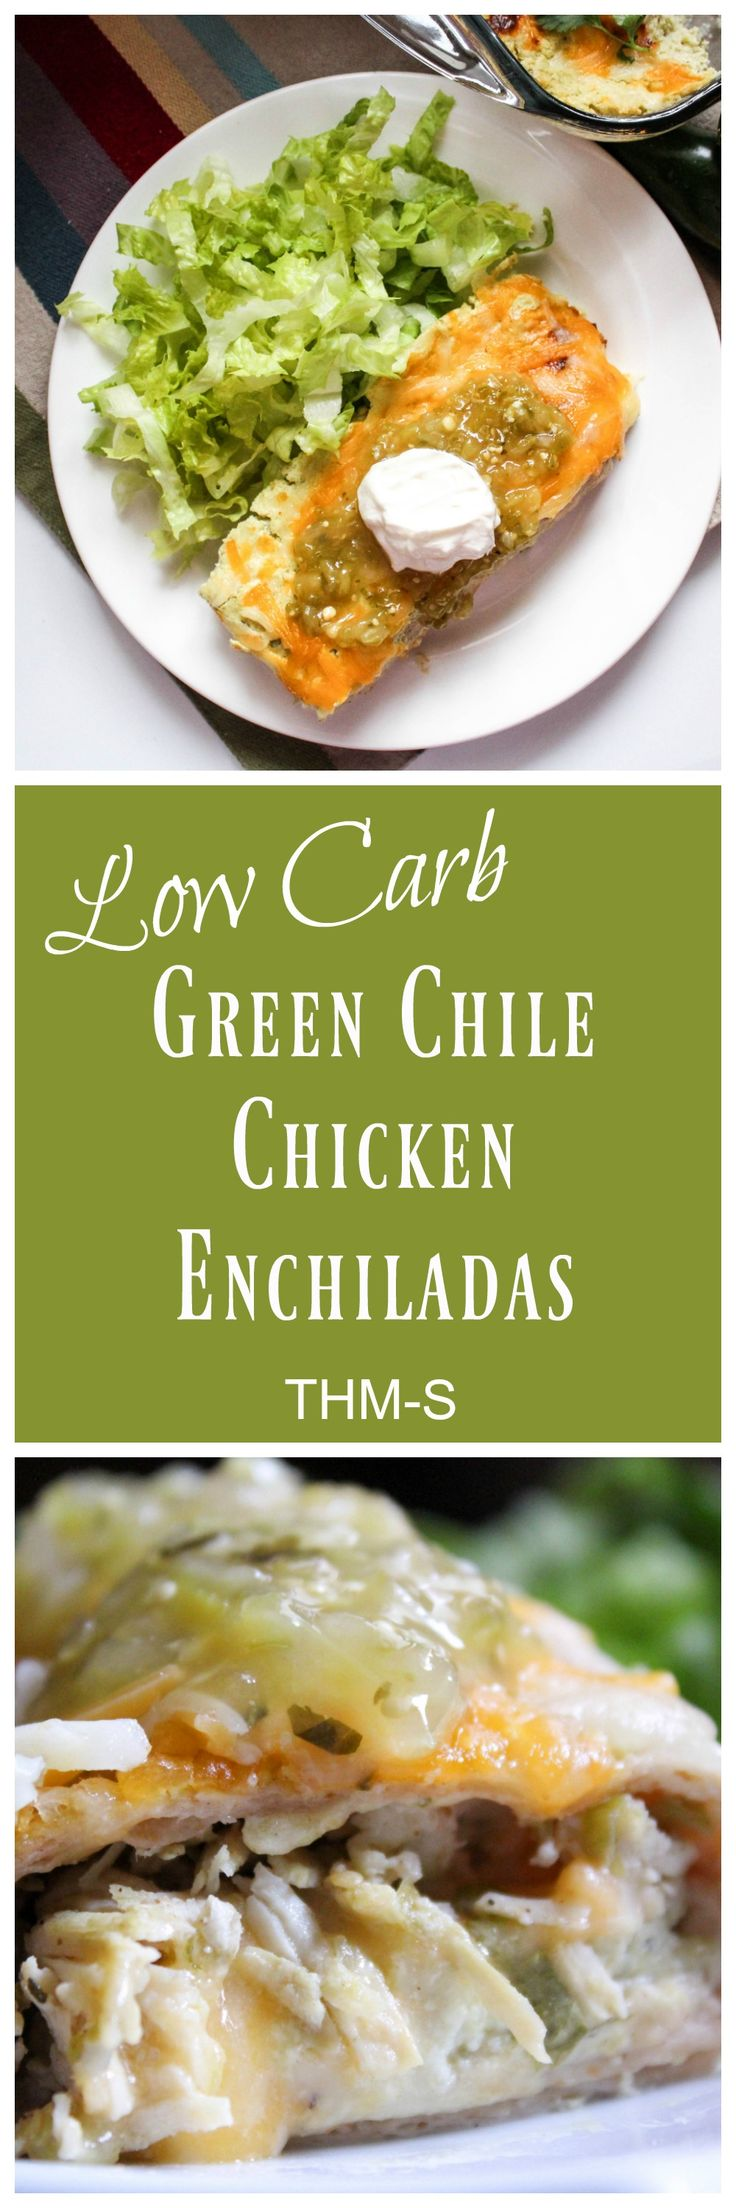 Green Chile Chicken Enchiladas {Low Carb, THM-S}